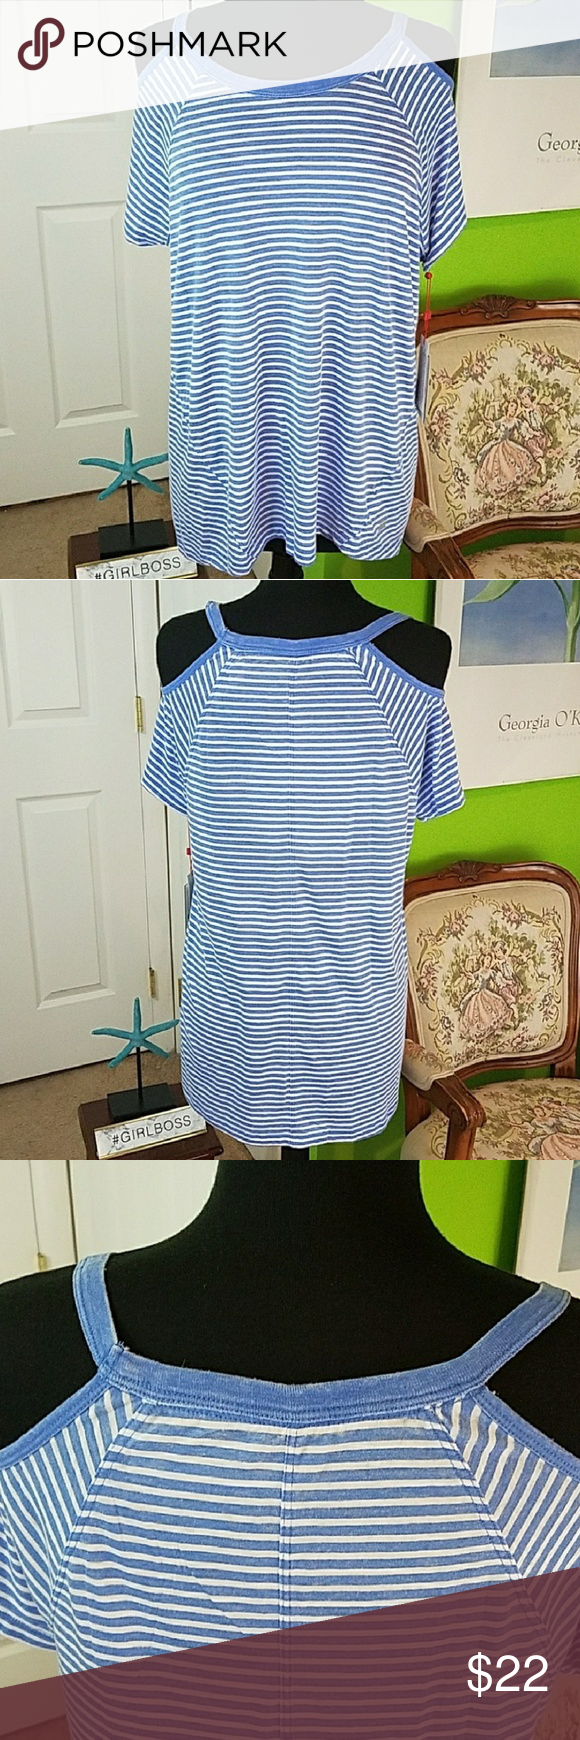 Medium Tommy Hilfiger Cold Shoulder Tee